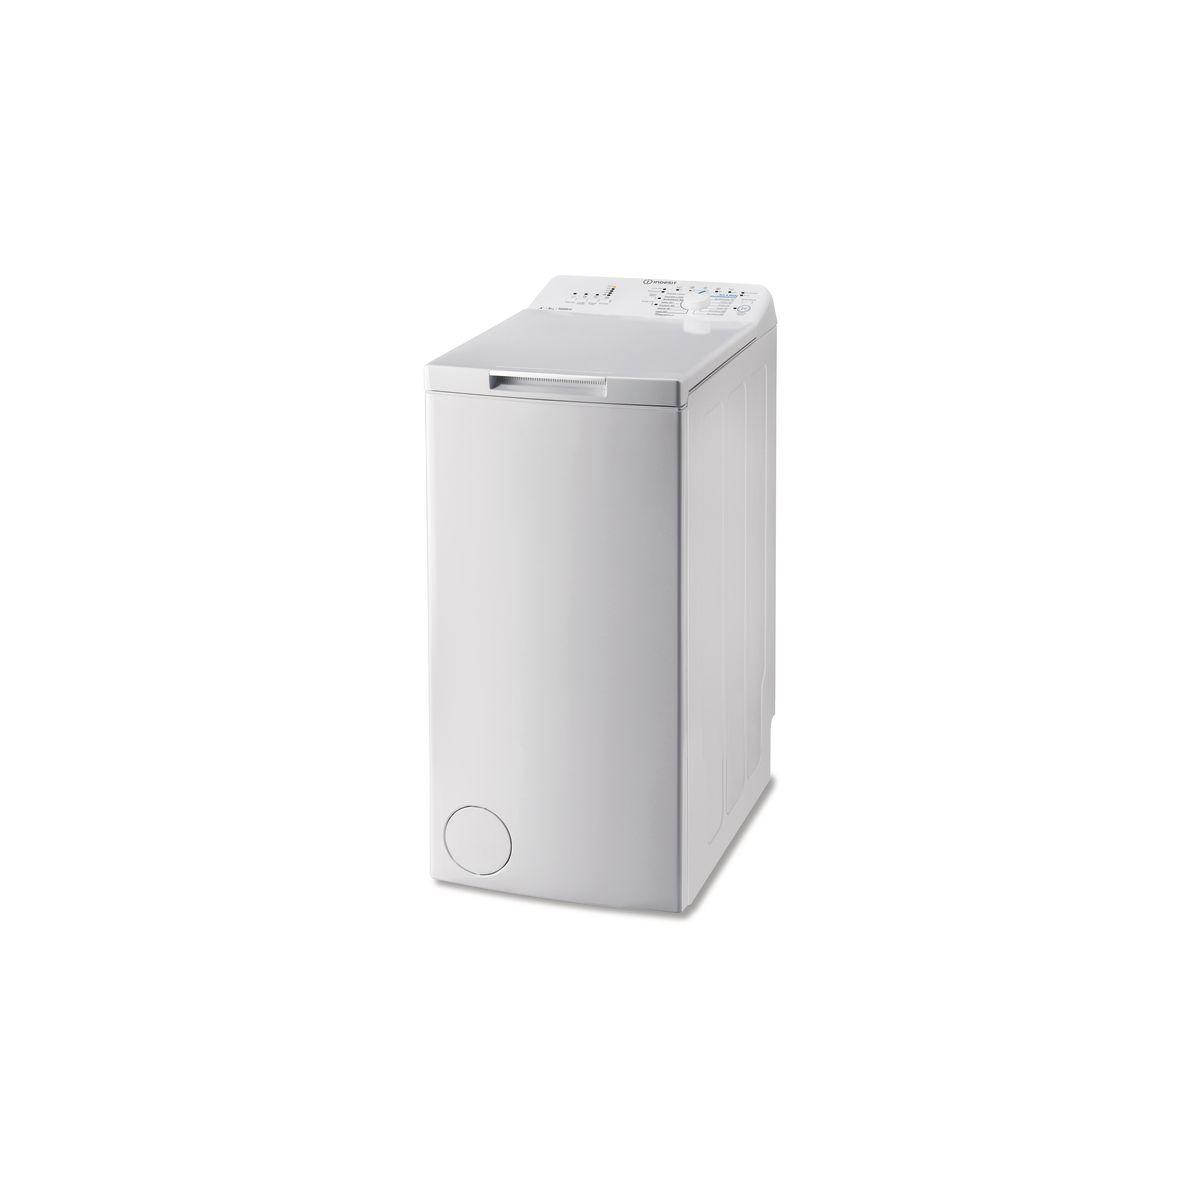 Lave linge top indesit btwca51052(fr) (photo)